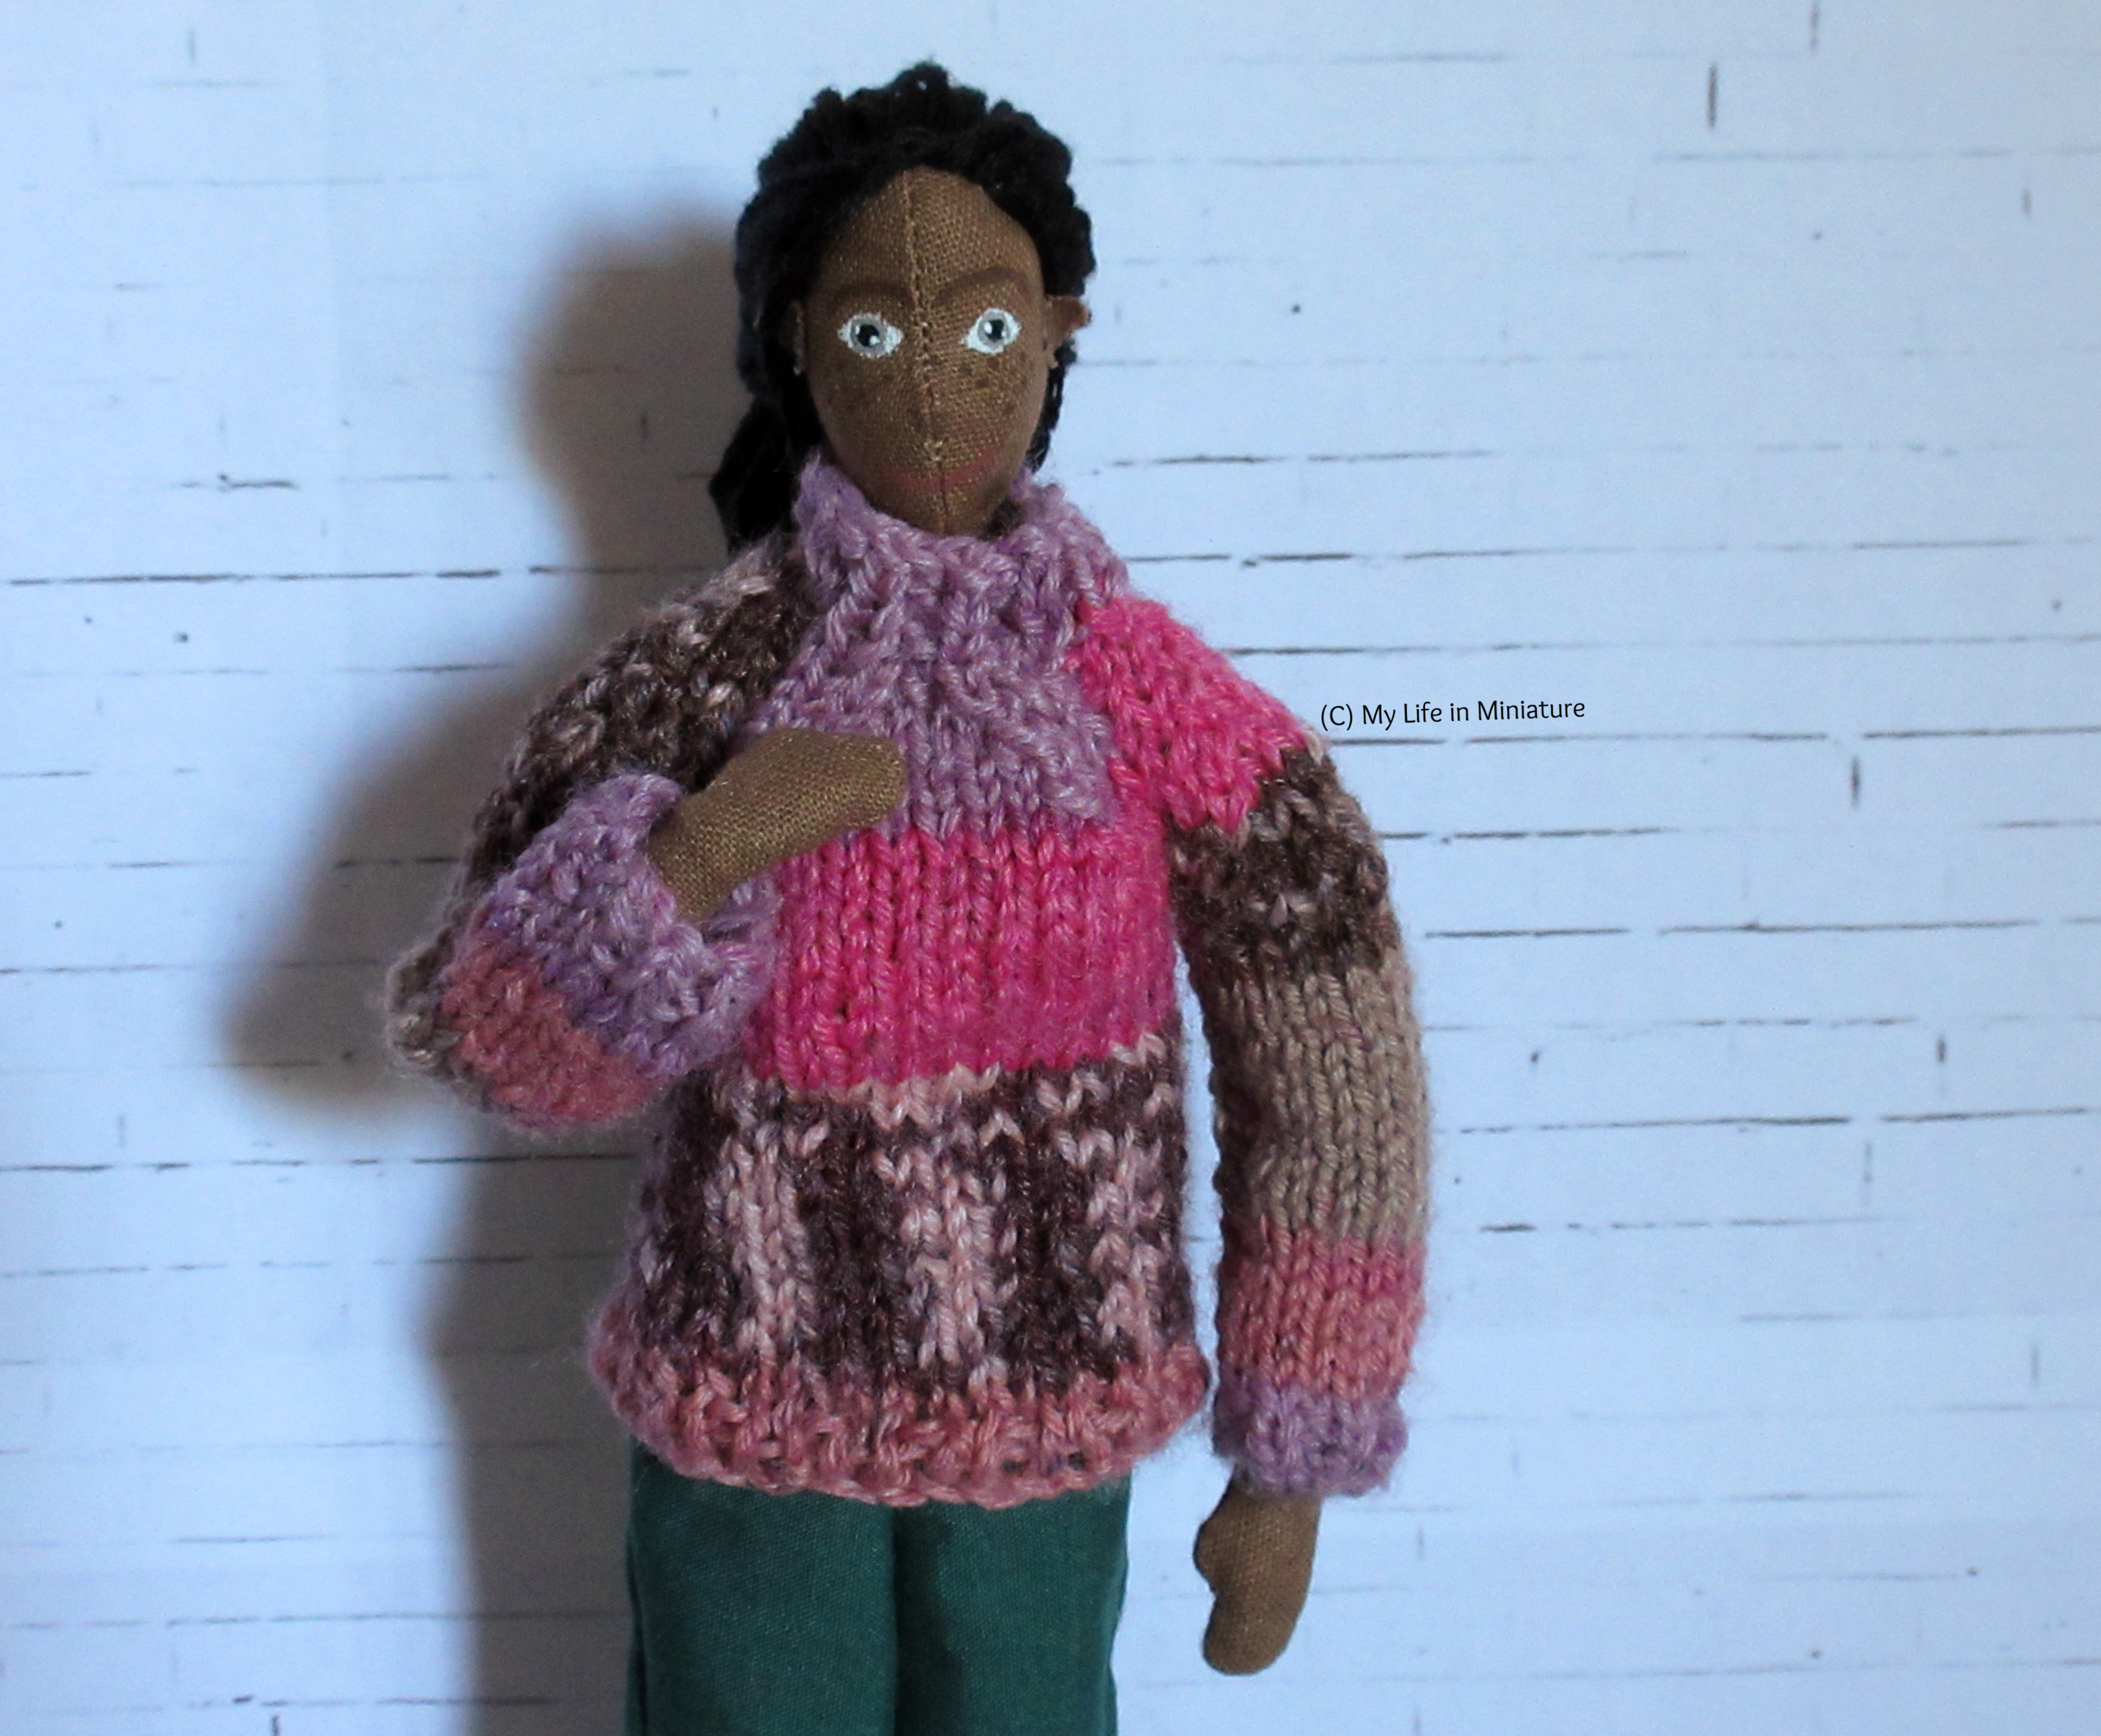 Petra wears the pink jumper, which now fits better at the neck, has longer sleeves, and a slimmer body. She looks at the camera.